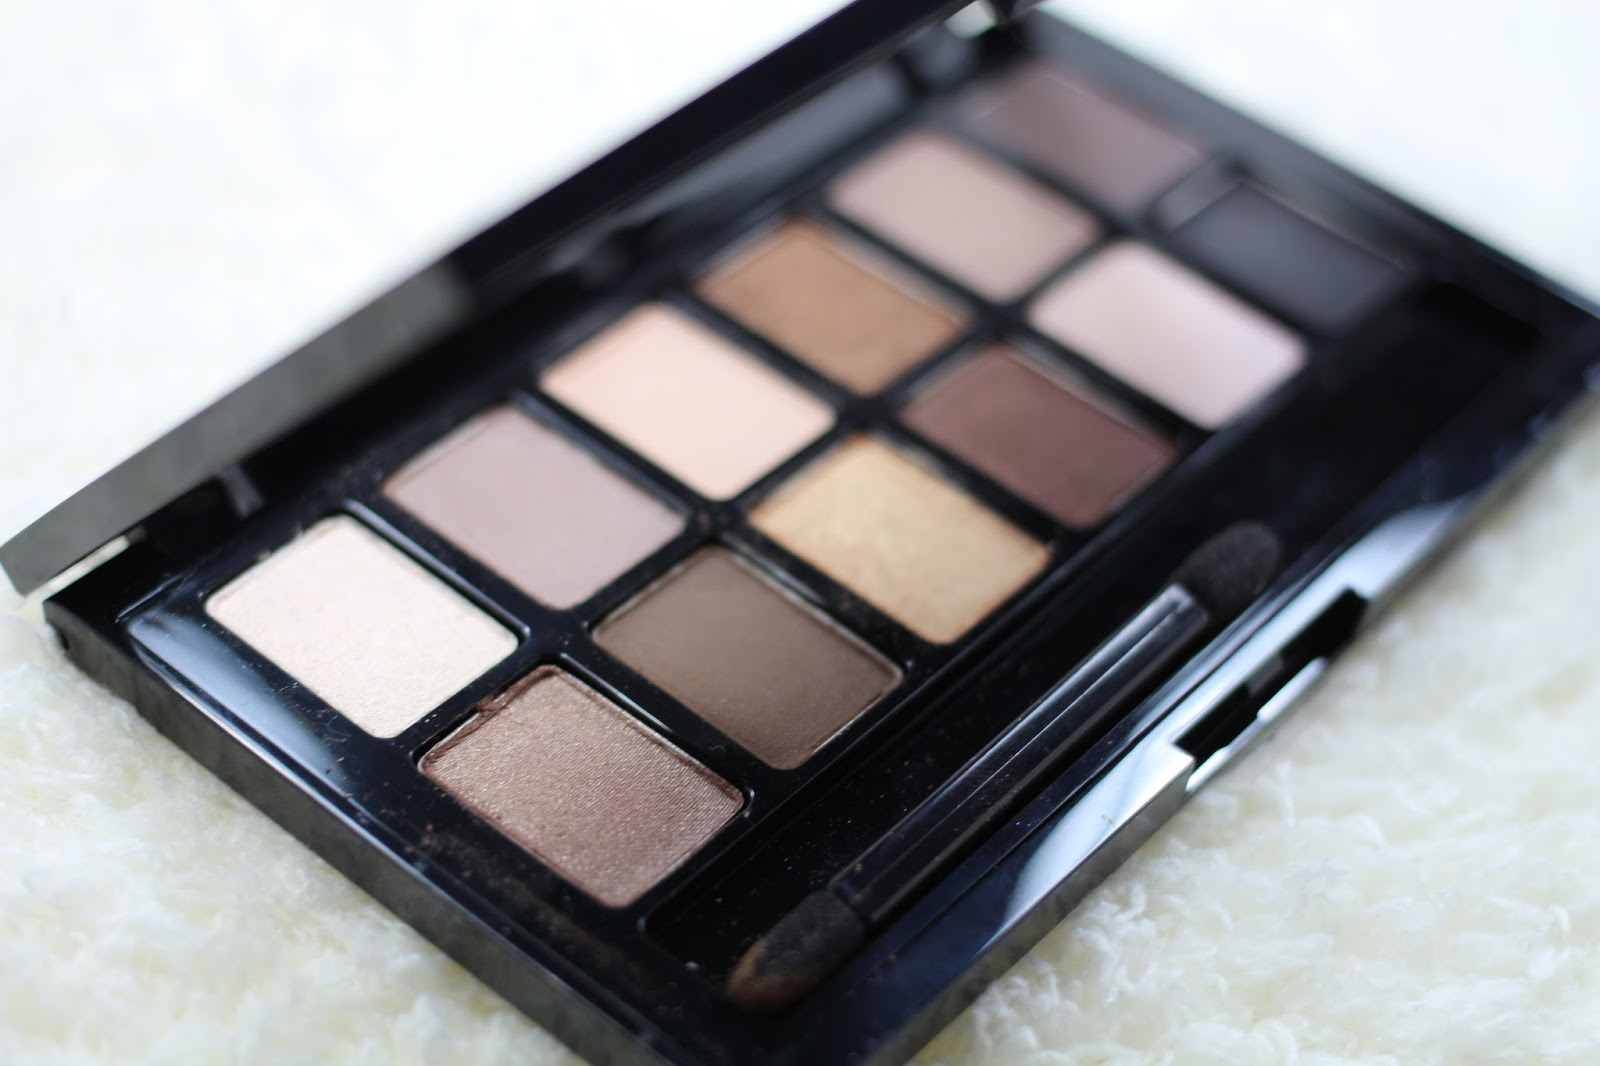 http://aboutsomethingpretty.blogspot.ro/2014/06/maybelline-nudes-eyeshadow-palette.html